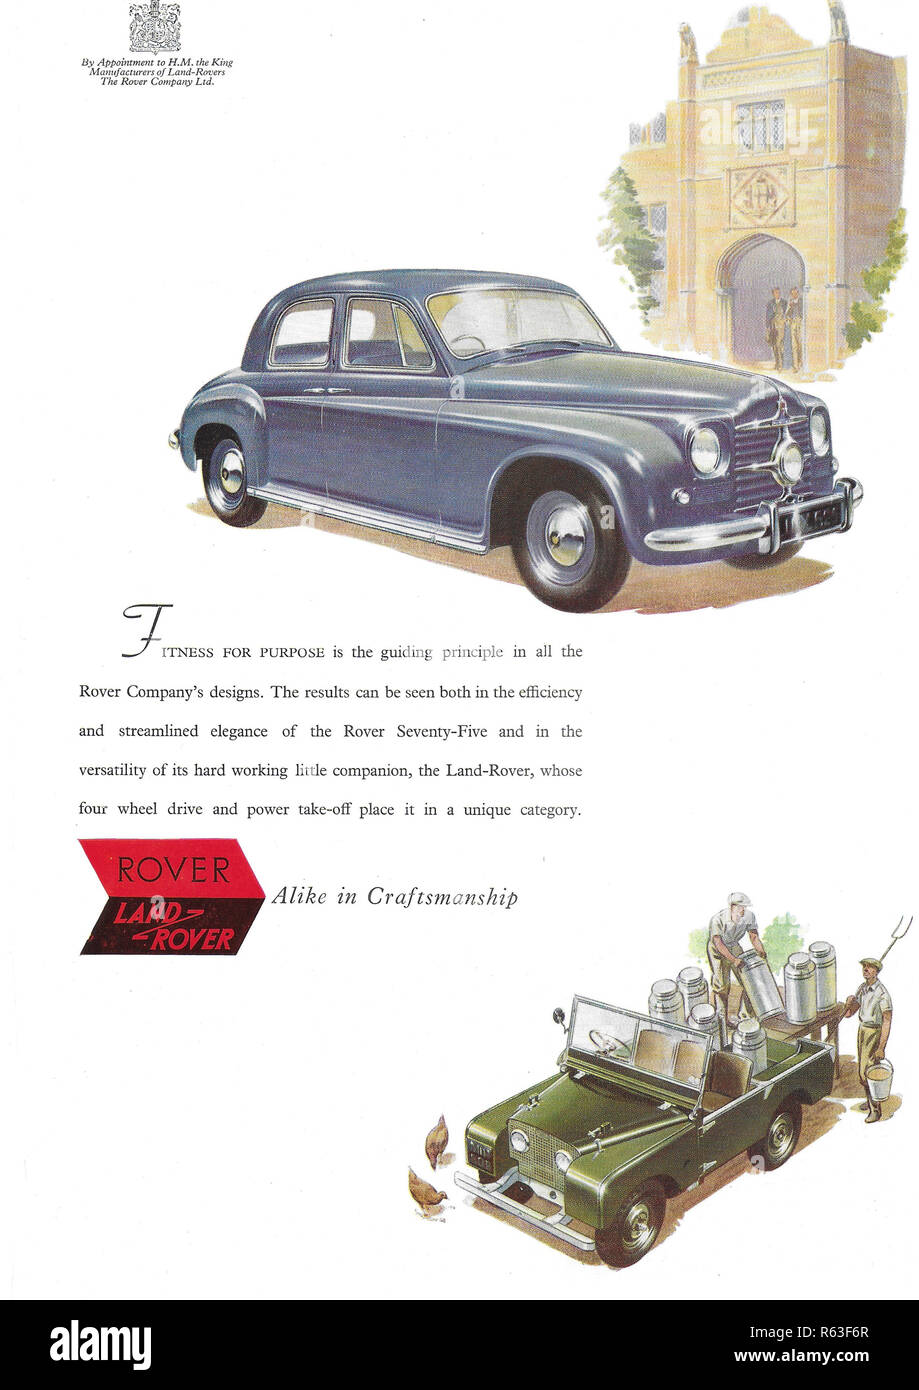 Rover car Land-Rover vehicle alike in craftsmanship advert advertising in Country Life magazine UK 1951 - Stock Image